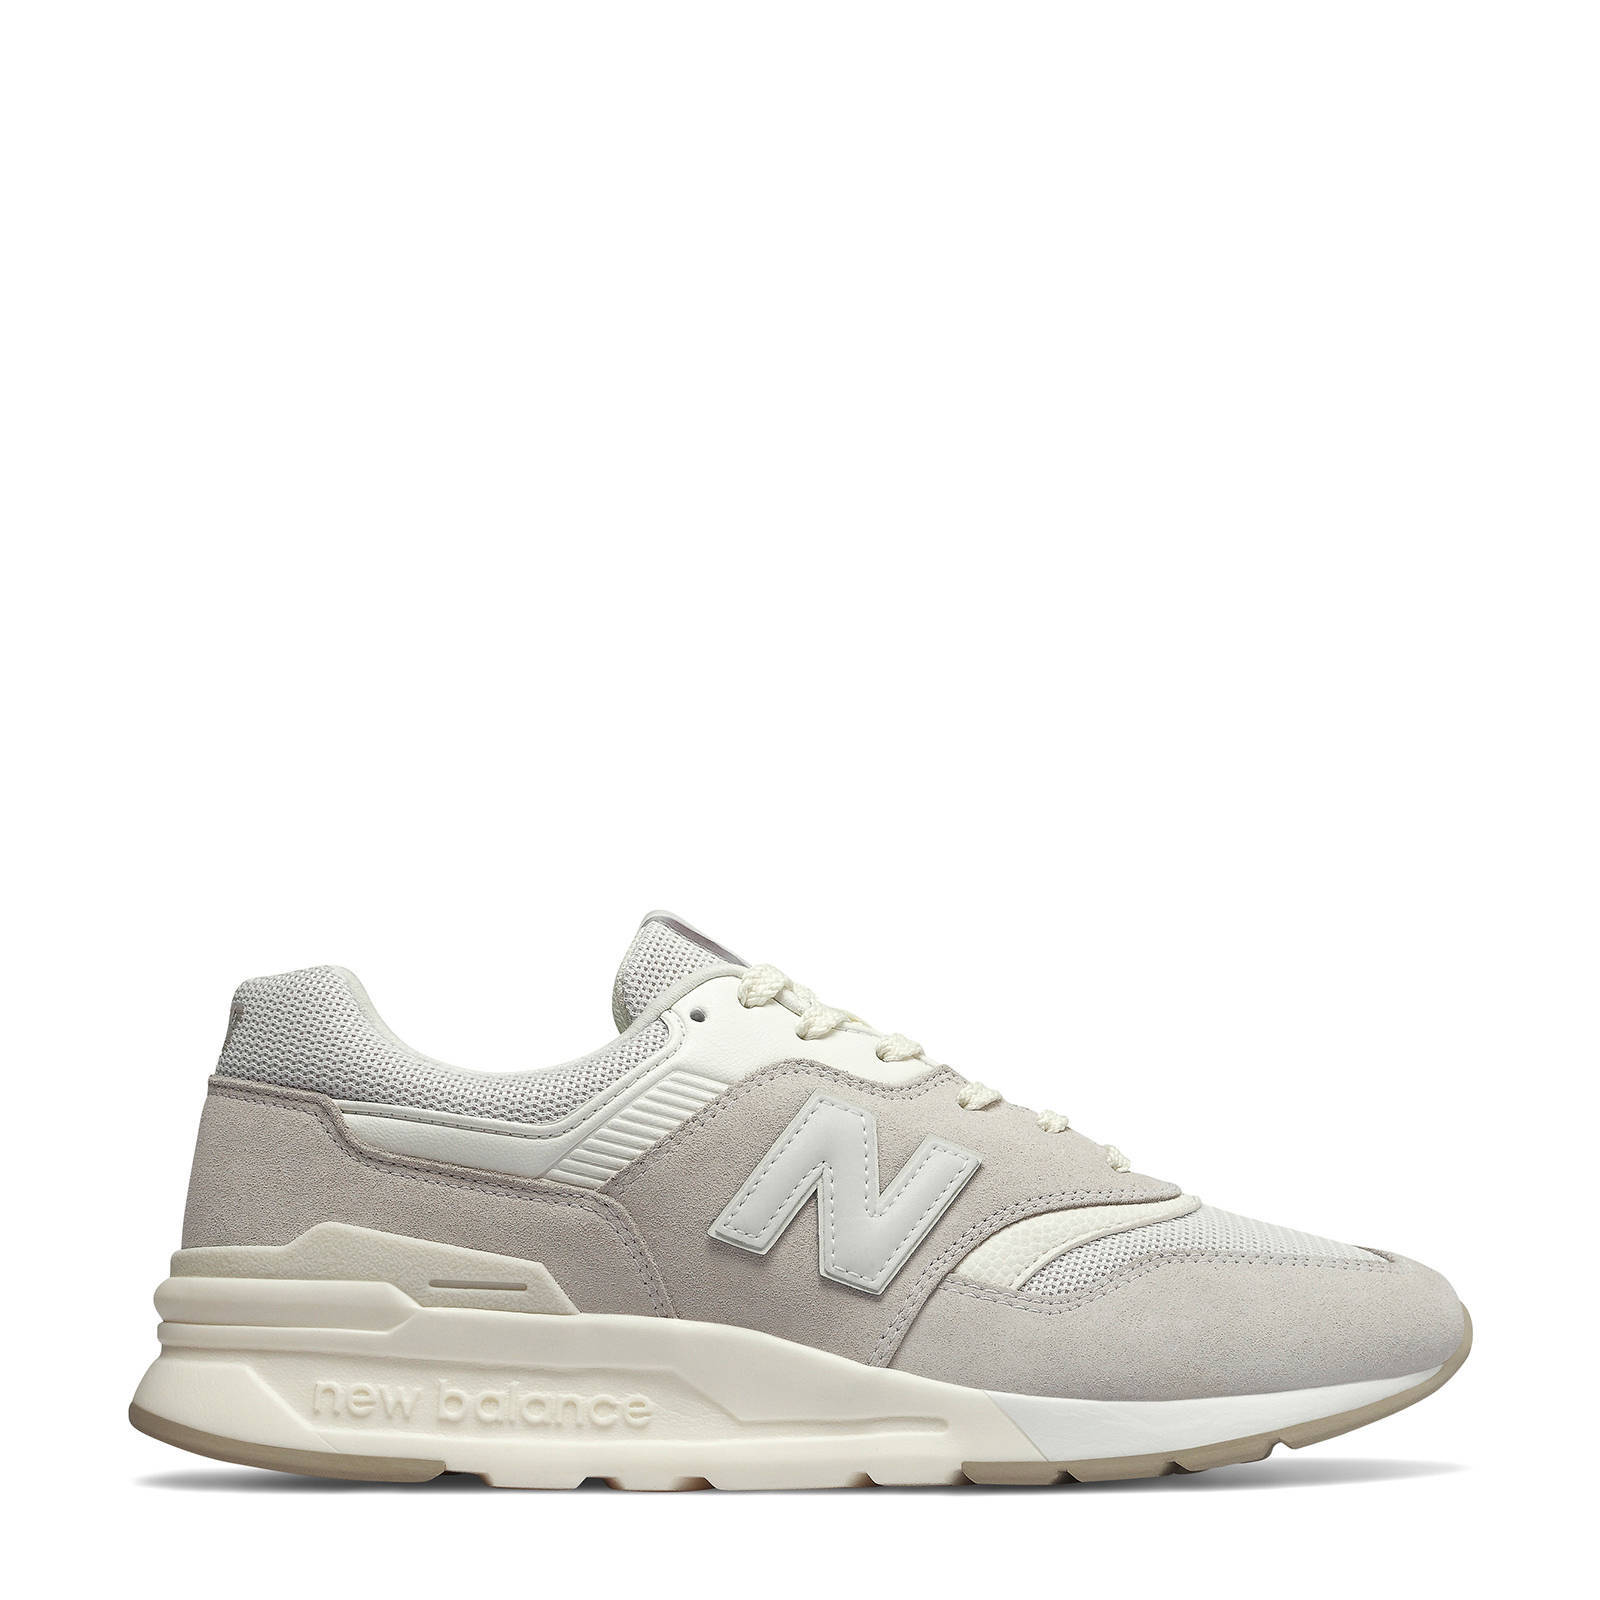 New Balance 997 sneakers wit | wehkamp